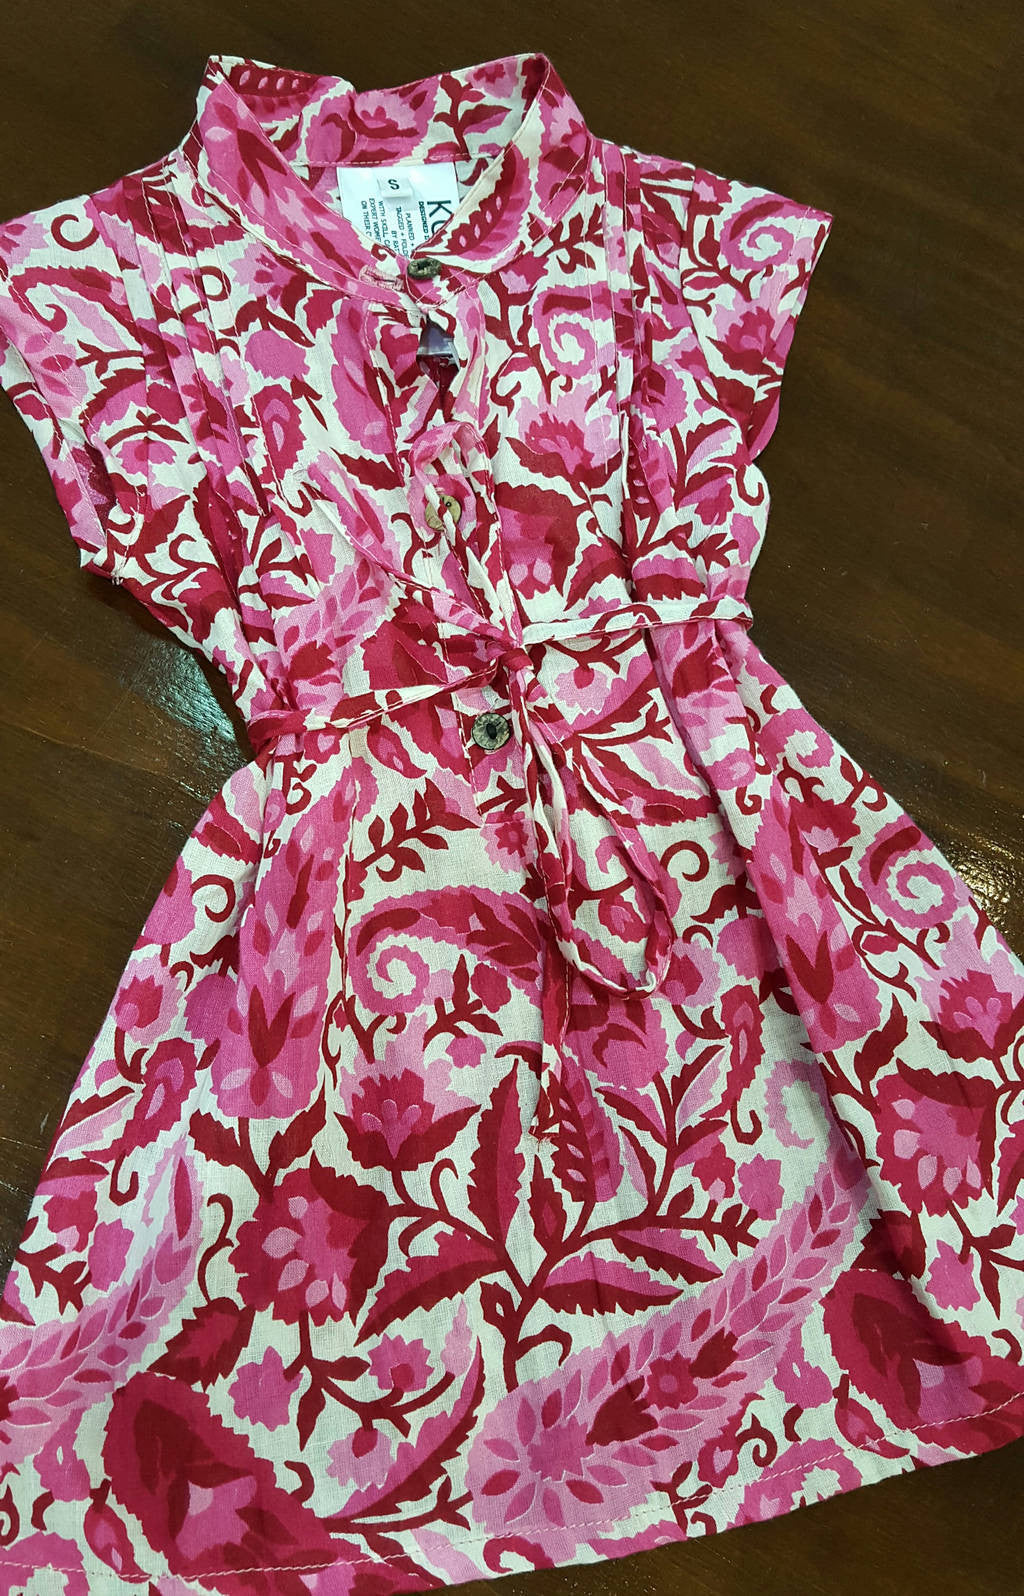 0cbbaedc08e Little Annie girl s cotton shirt dress. Pink paisley. Sizes to fit 6 month  old ...